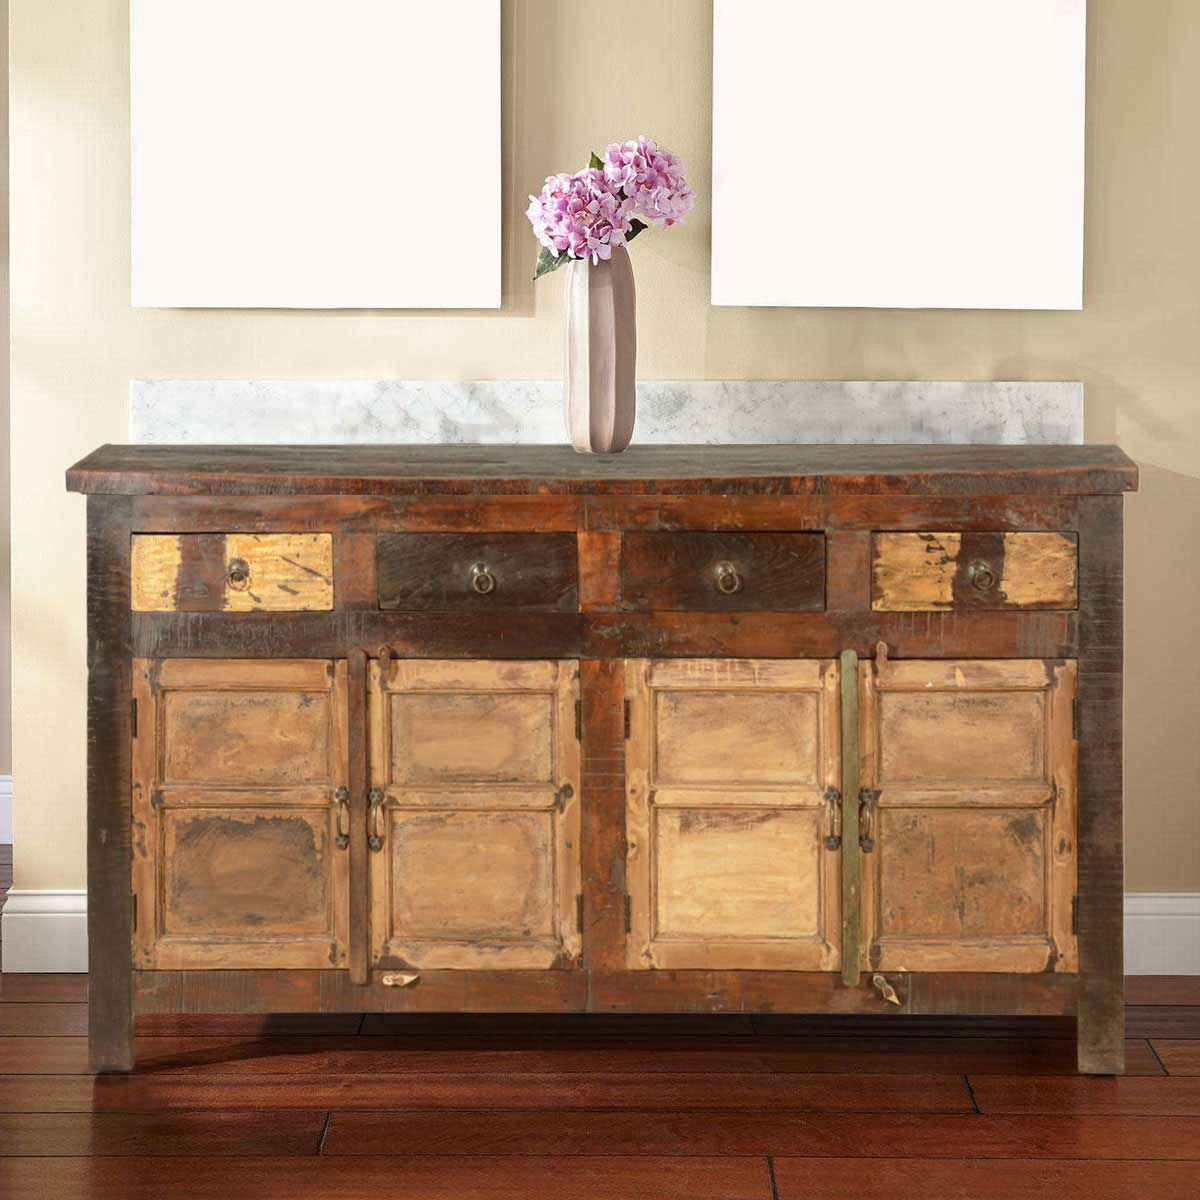 New England Rustic Reclaimed Wood 4 Drawer Sideboard : 6417 from www.sierralivingconcepts.com size 1200 x 1200 jpeg 92kB